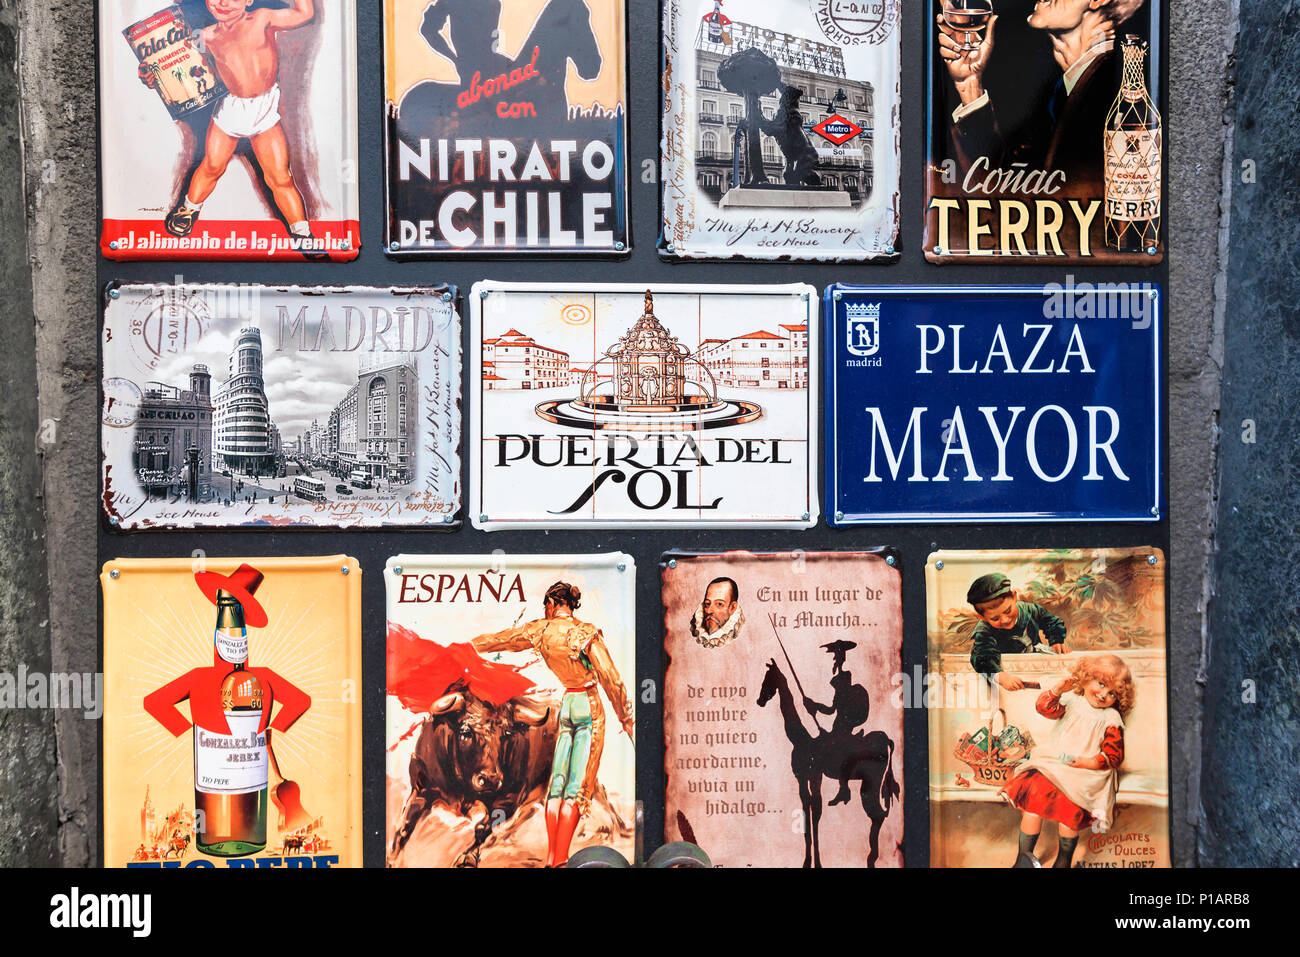 A collection of souvenir plaques for sale to tourists in the Puerta del Sol showing the attractions of Madrid or Spain. - Stock Image